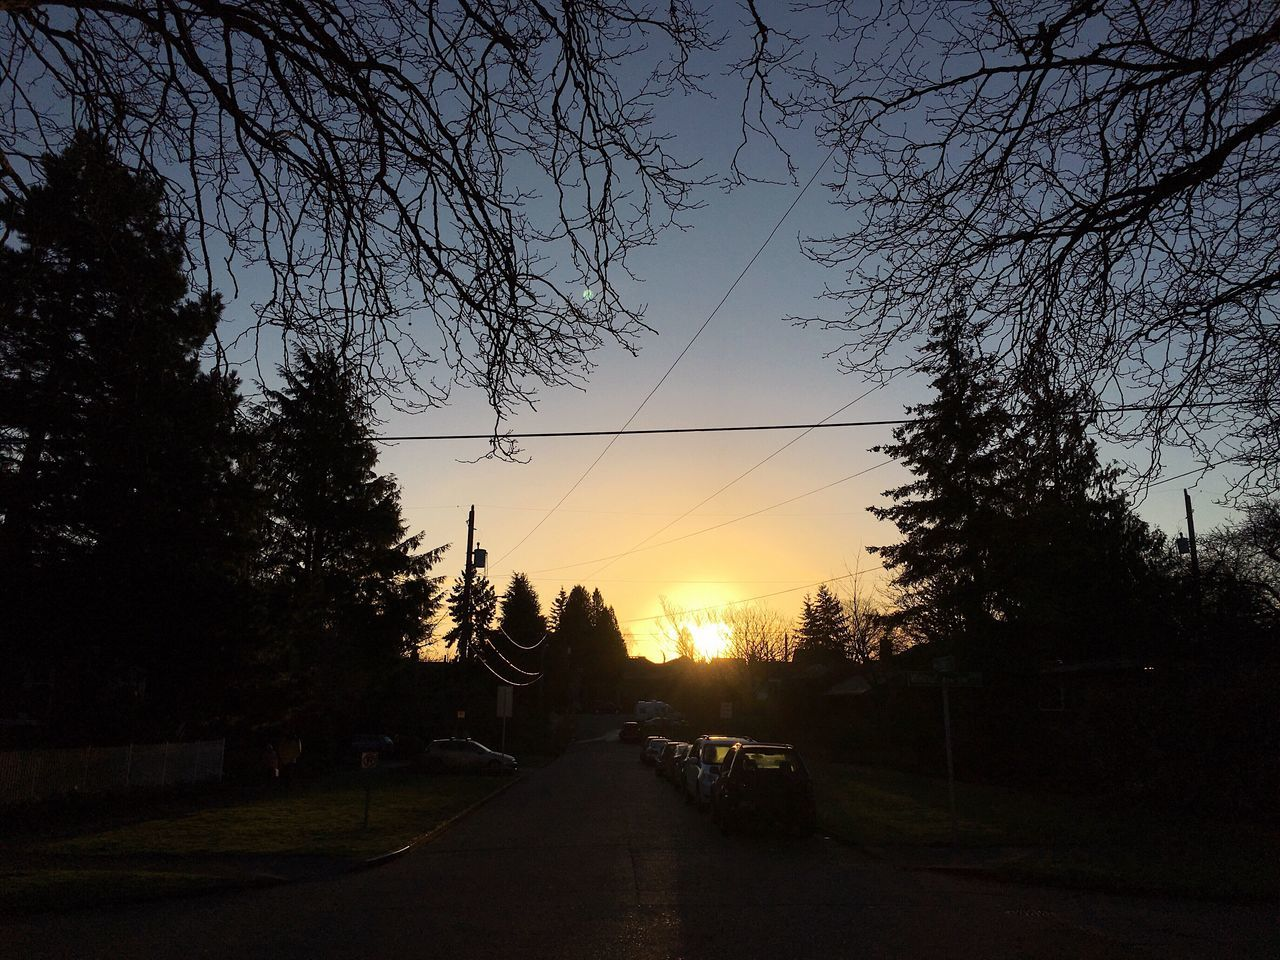 morning walk to the bus. West Seattle